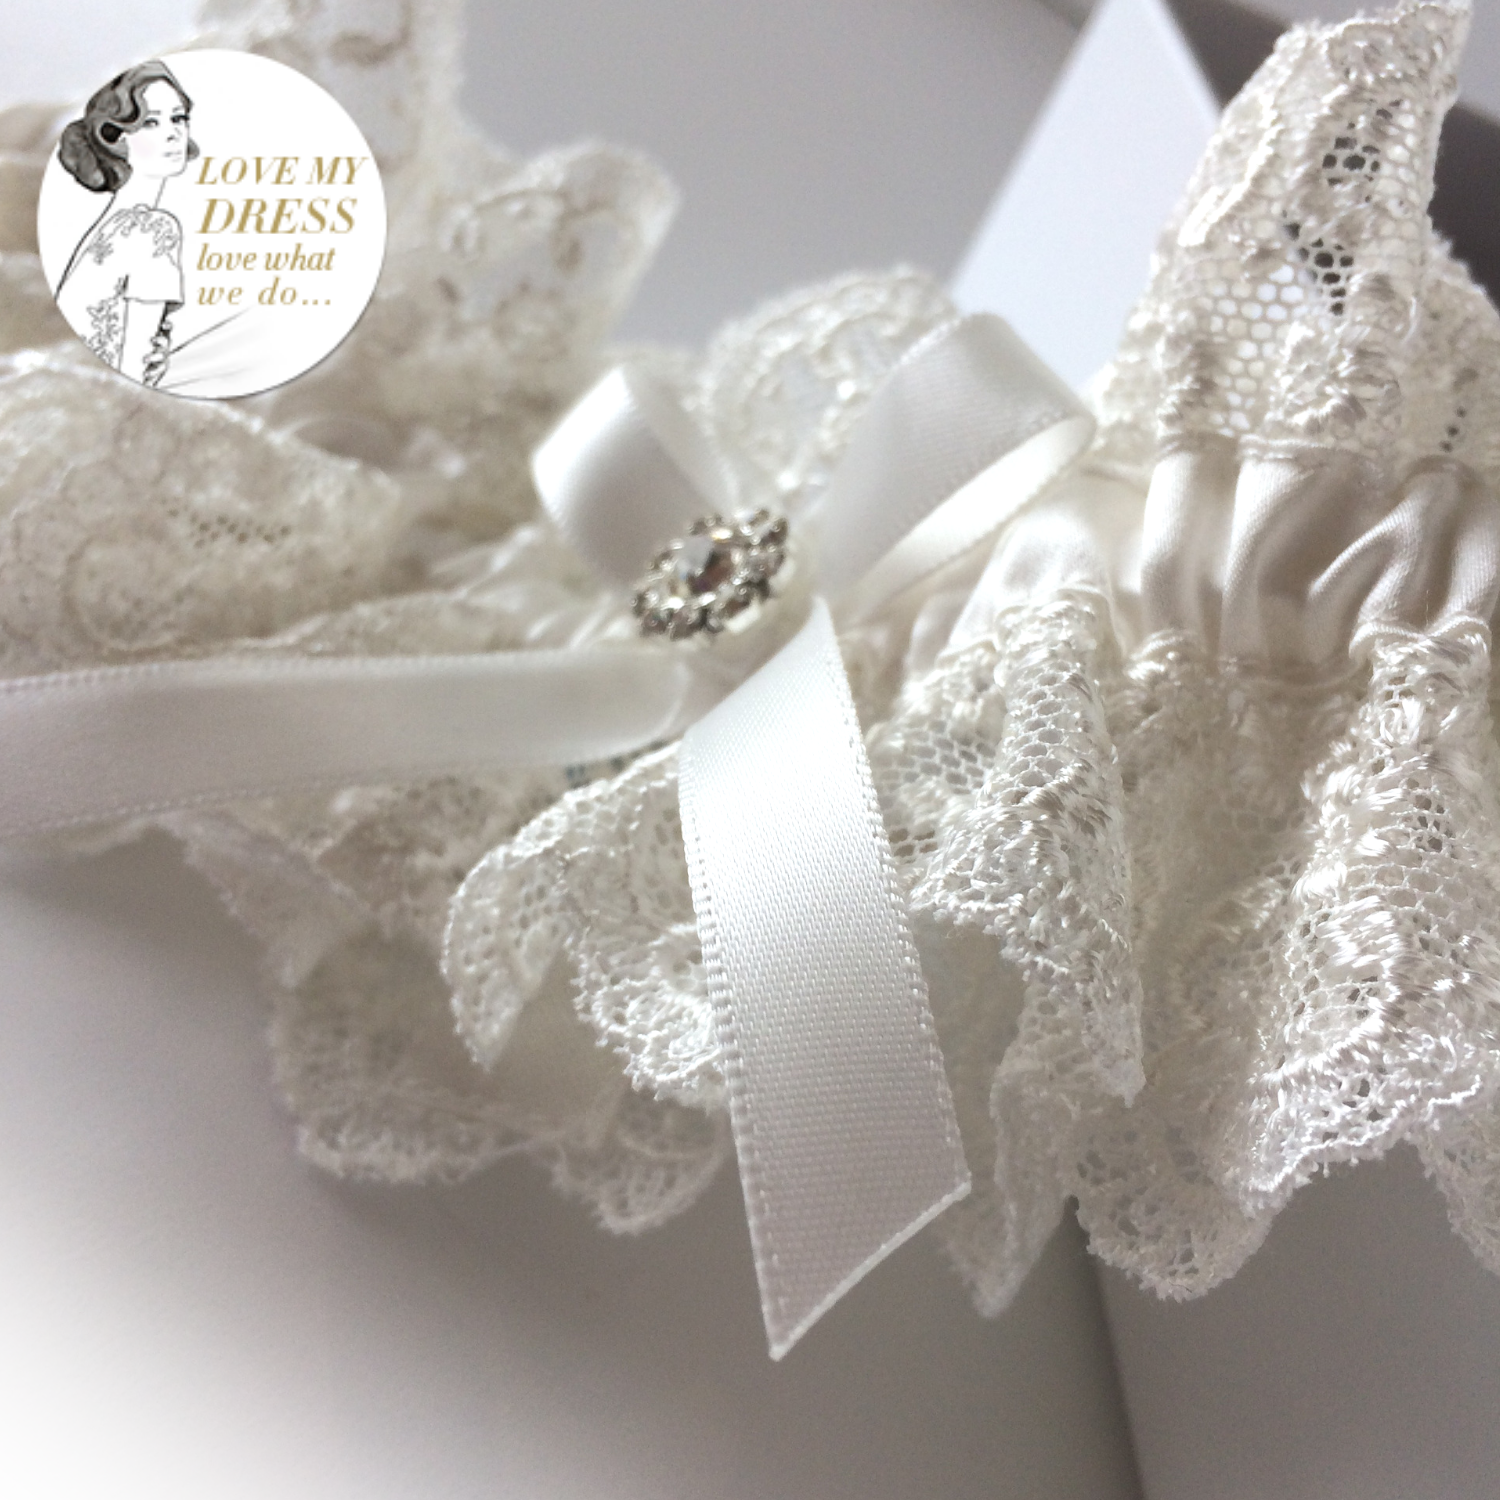 Luxury ivory wedding garter set Nottingham Lace